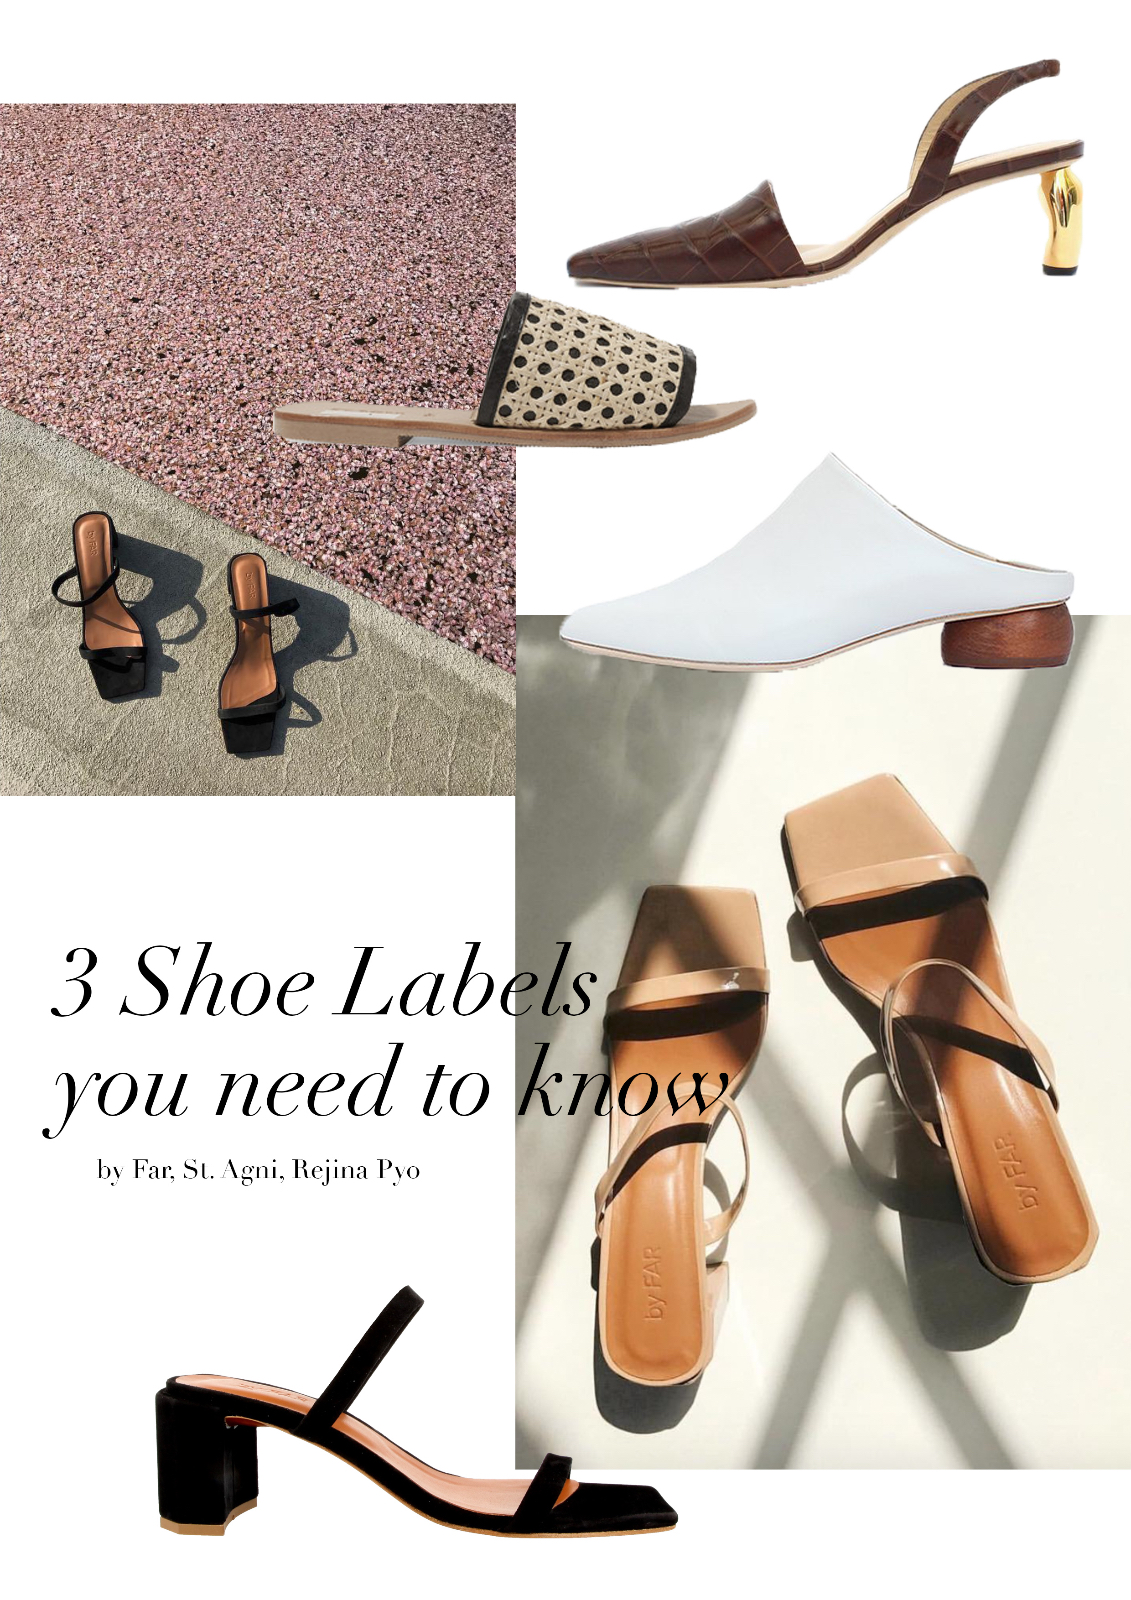 Discovered: 3 Shoe Labels you need to know